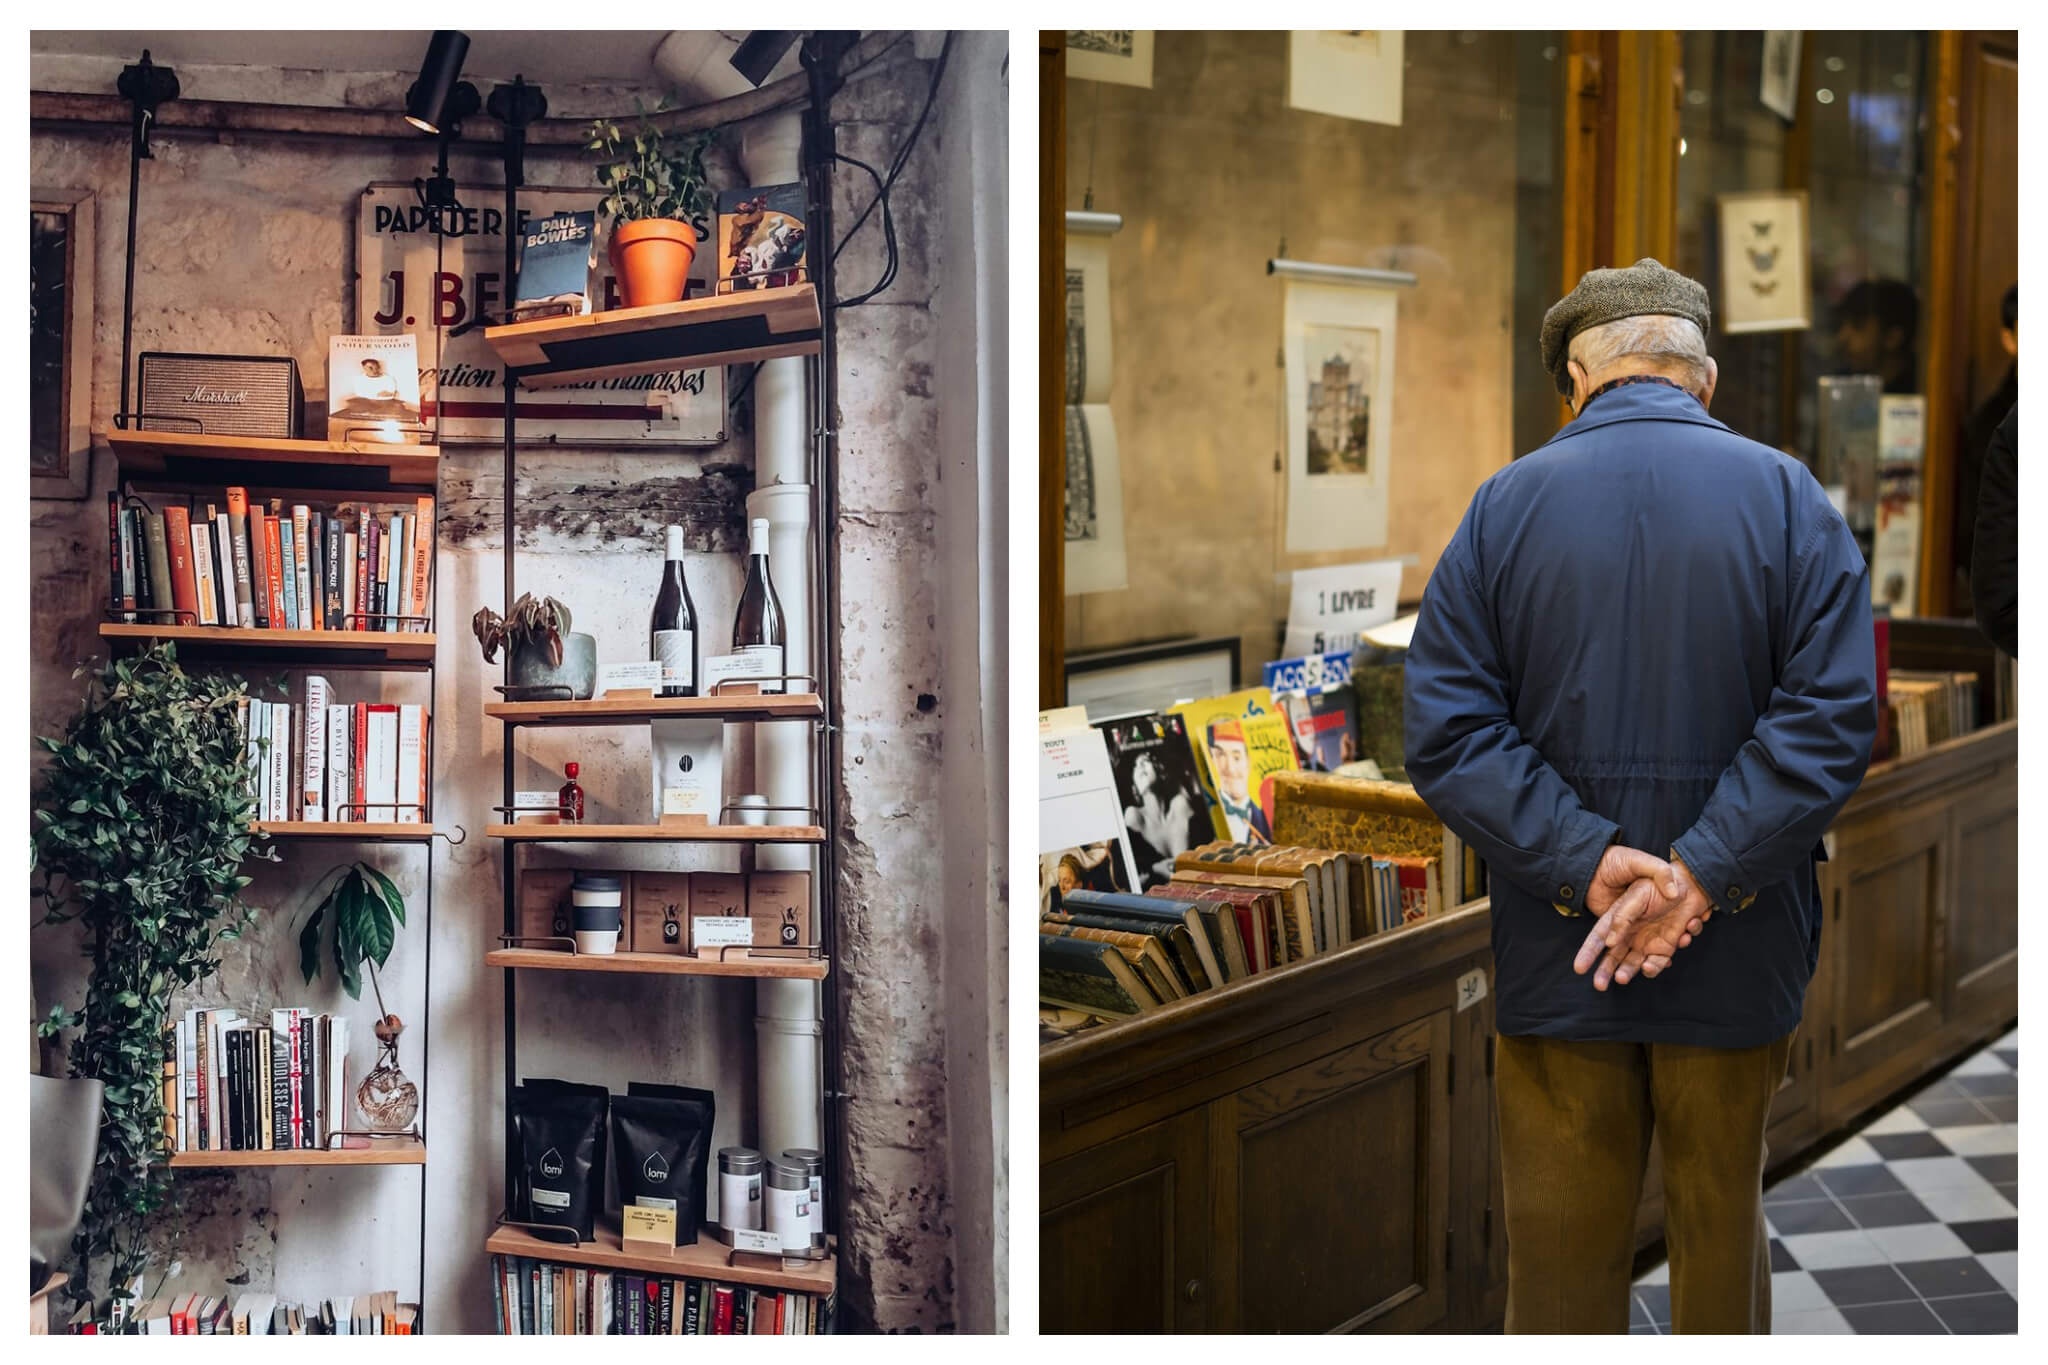 Left: Shelves at the Shakespeare and Co. bookstore in Paris displaying books, bags of coffee, plants and other assorted items, Right: A man in a blue jacket and gray hat walks through a passage in Paris and browses at an assortment of books.